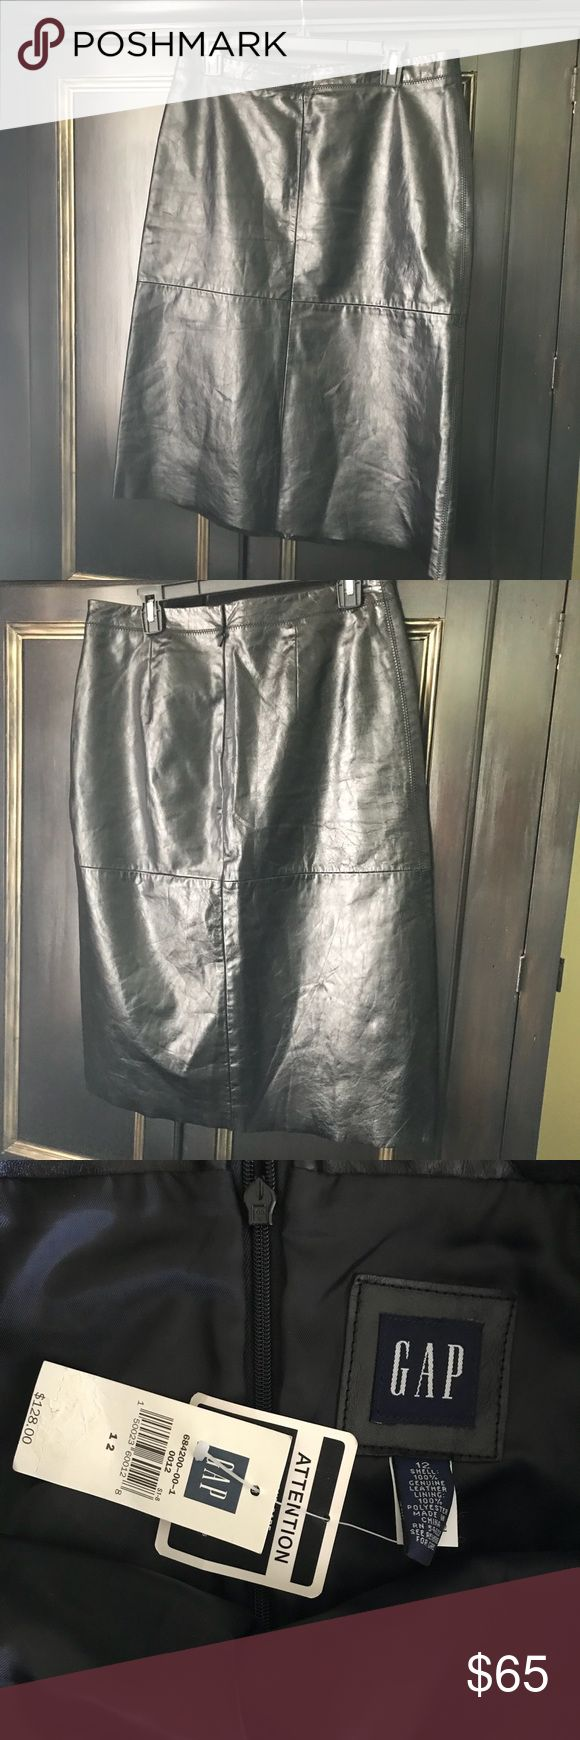 "NWT Gap leather midi skirt - lined fully leather Back when gap used to be high quality- this is quite the find - a new w tags Gap fully lined midi skirt - zipper closure - approx measurements 33"" waist 28"" length GAP Skirts Midi"